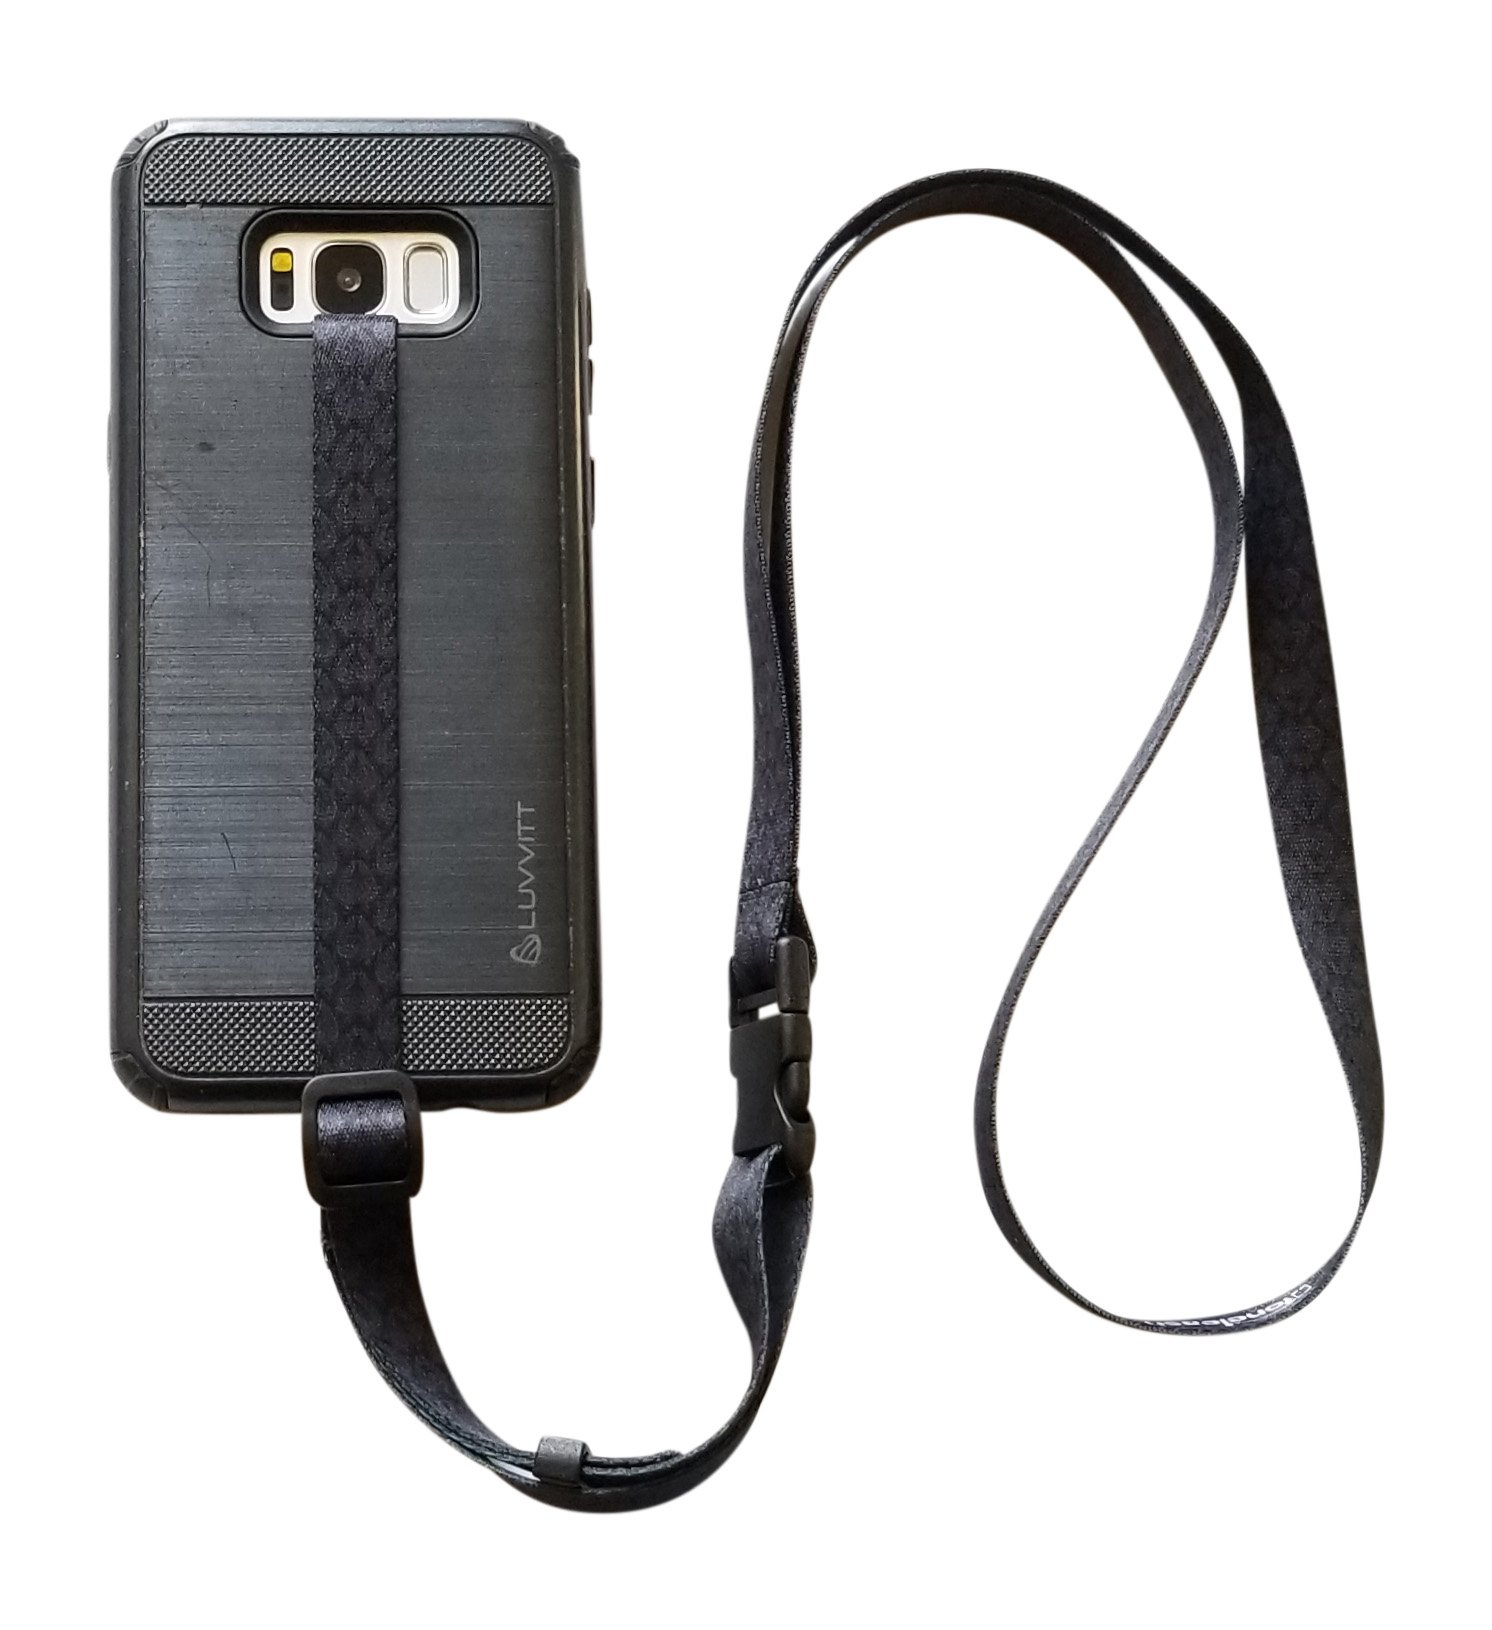 finest selection e94a0 c3518 foneleash 3 in 1 Universal Cell Phone Lanyard Neck Wrist and Hand Strap  Tether (Spade)